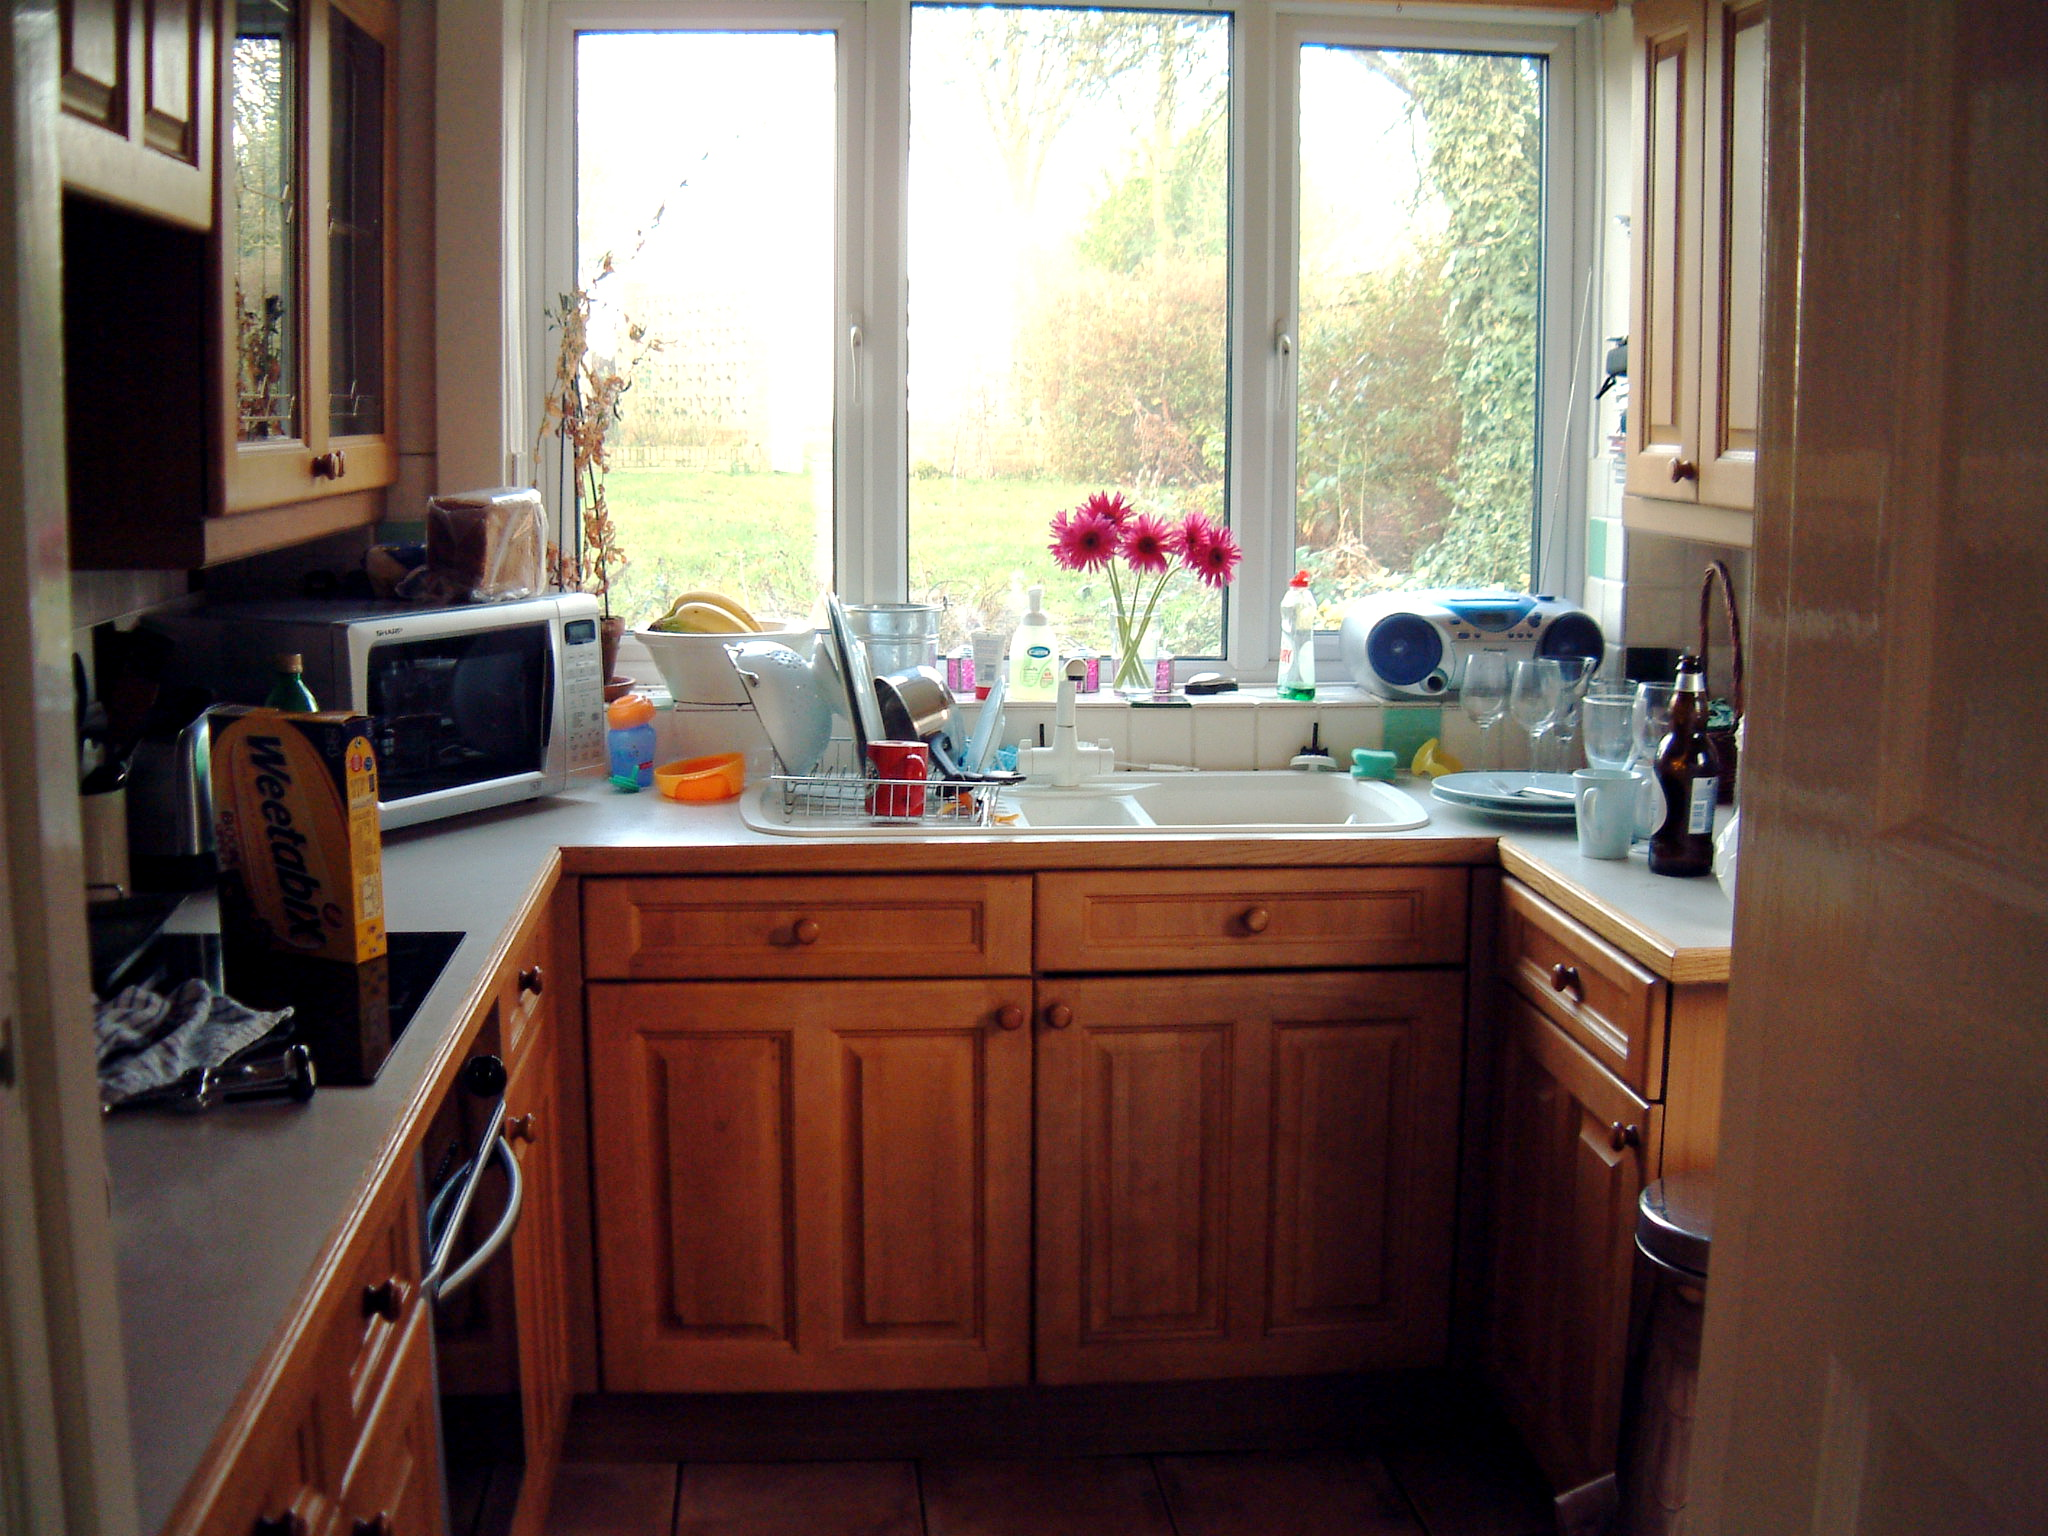 Space saving tips for small kitchens interior designing for Gorgeous small kitchens